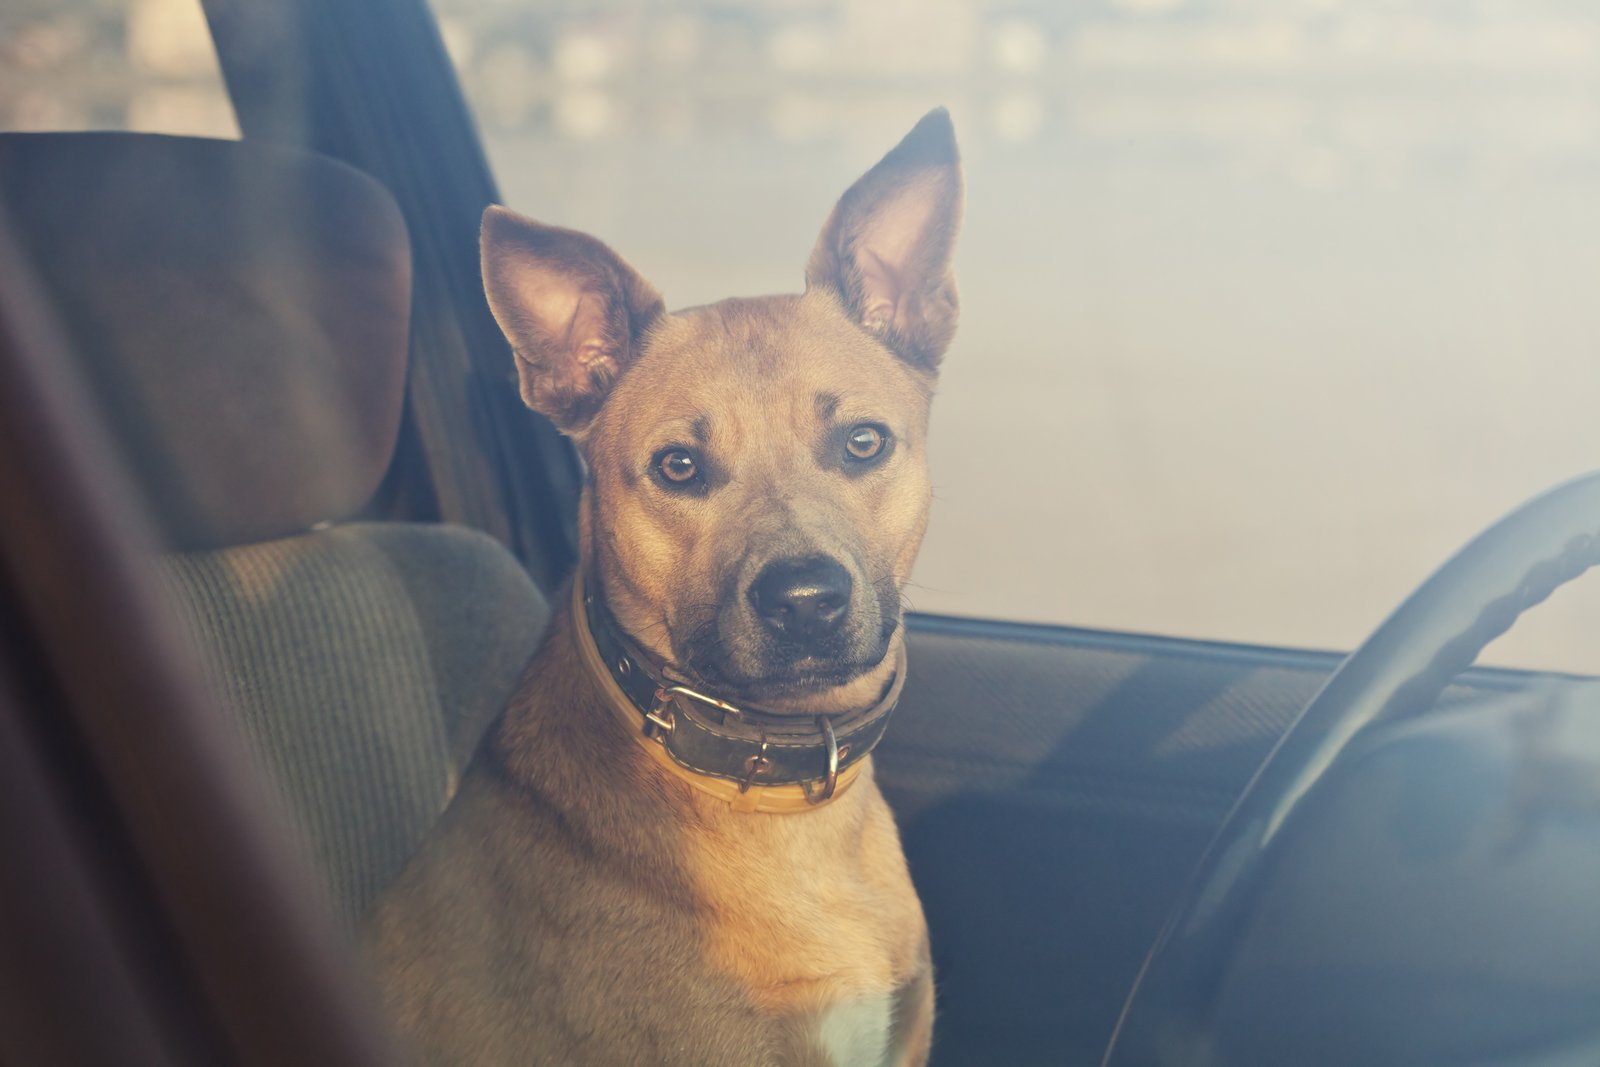 A brown dog with alert ears sitting in the passenger seat of a car, behind the steering wheel